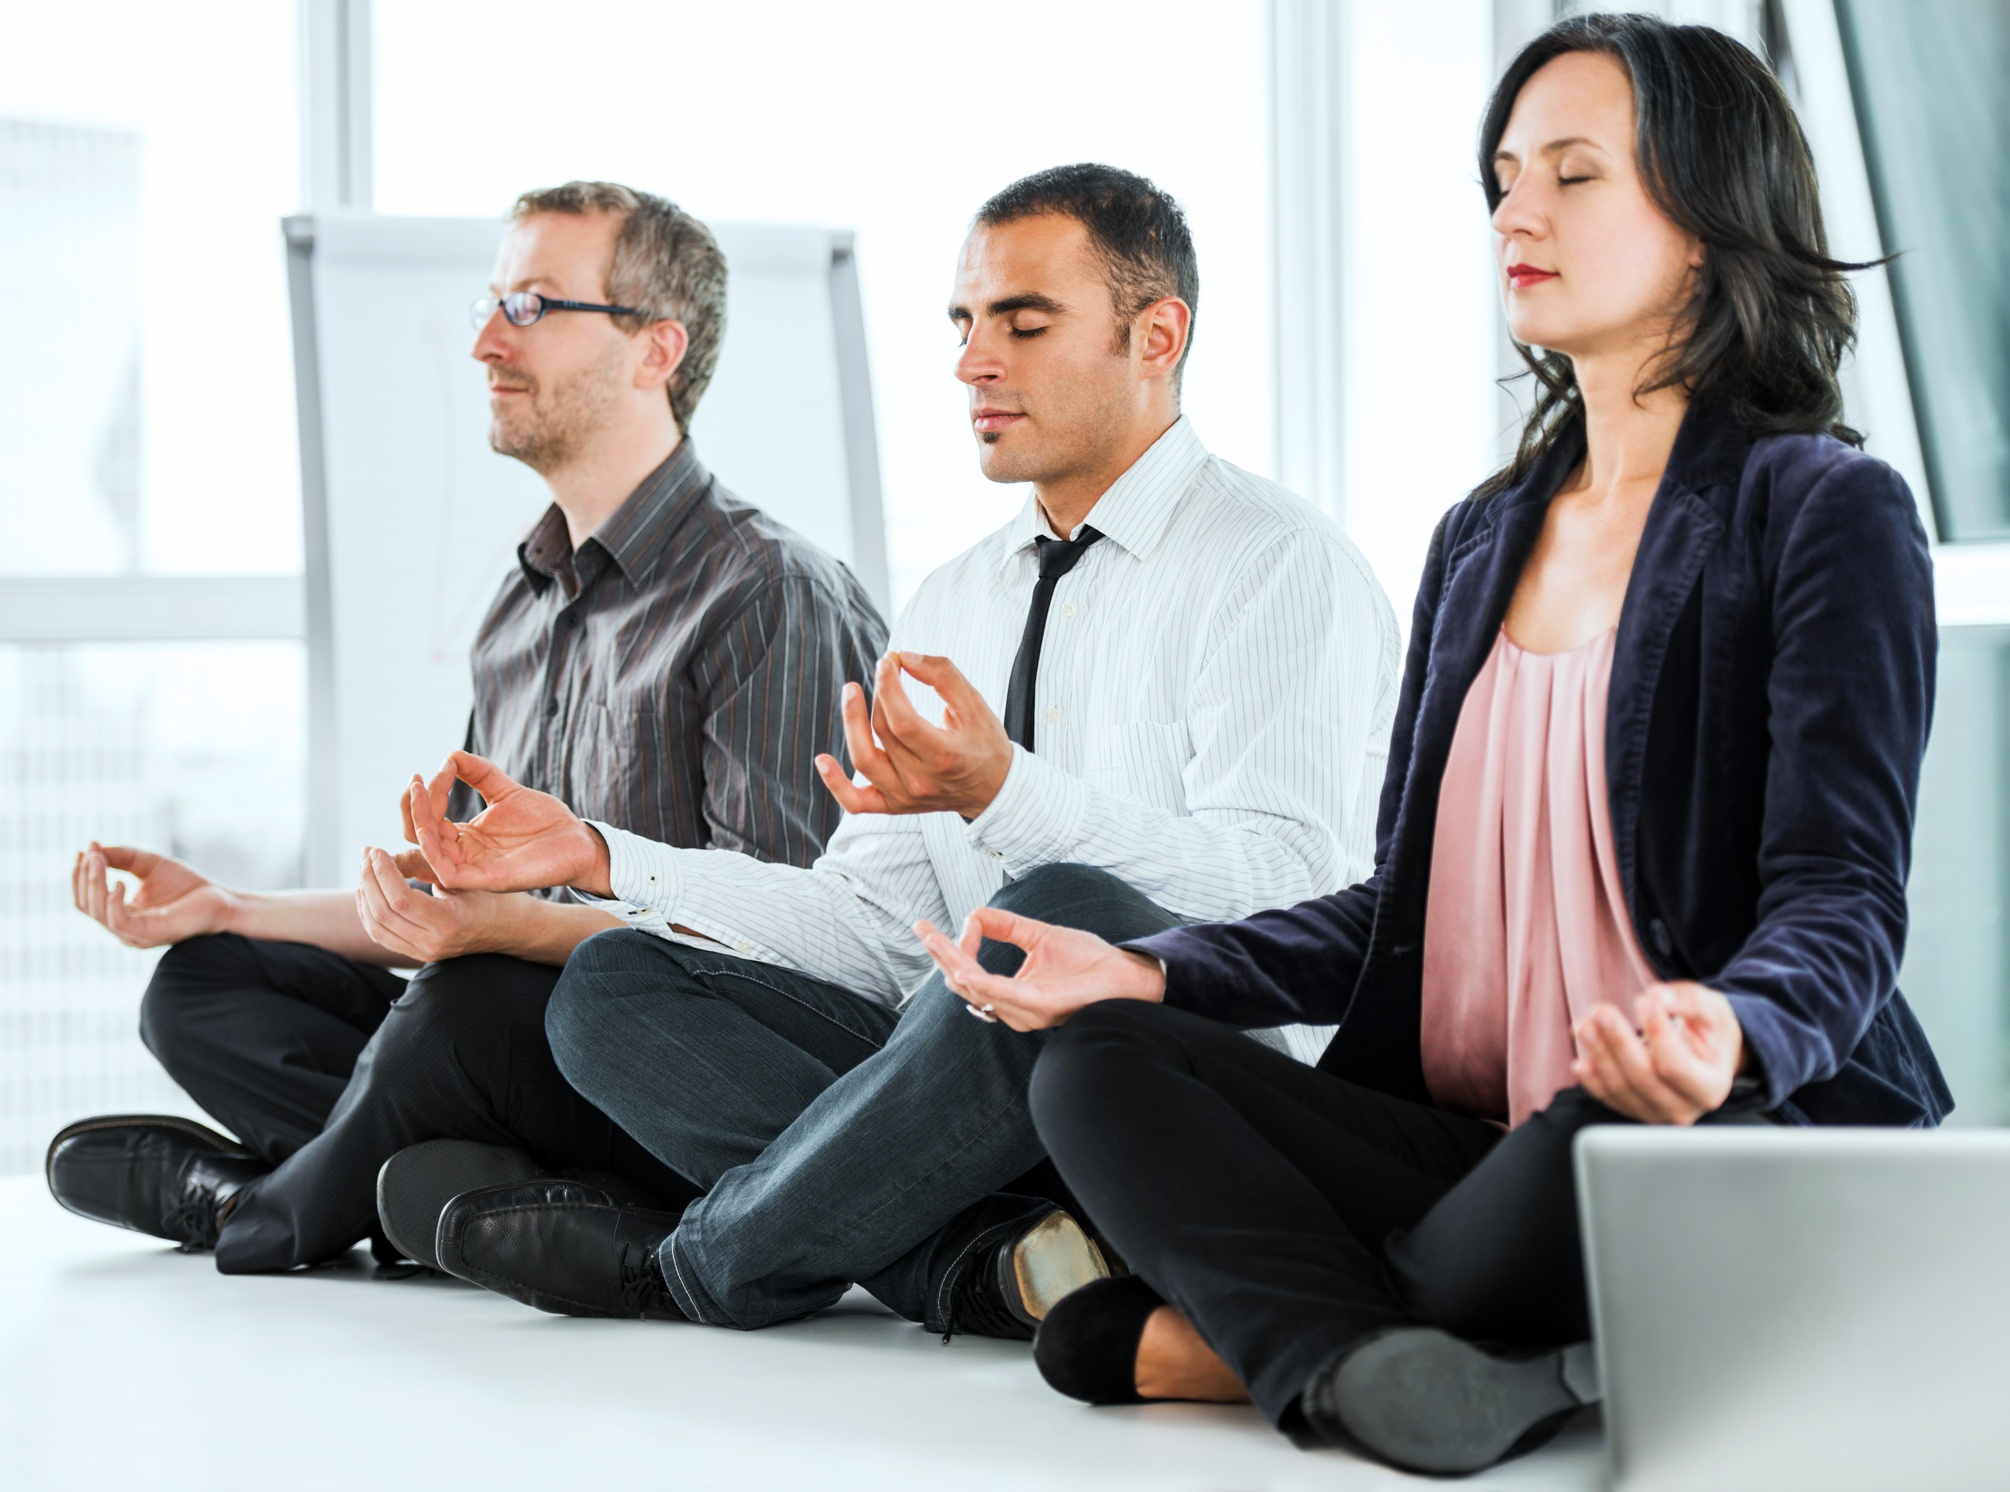 Successful business people meditating in the office